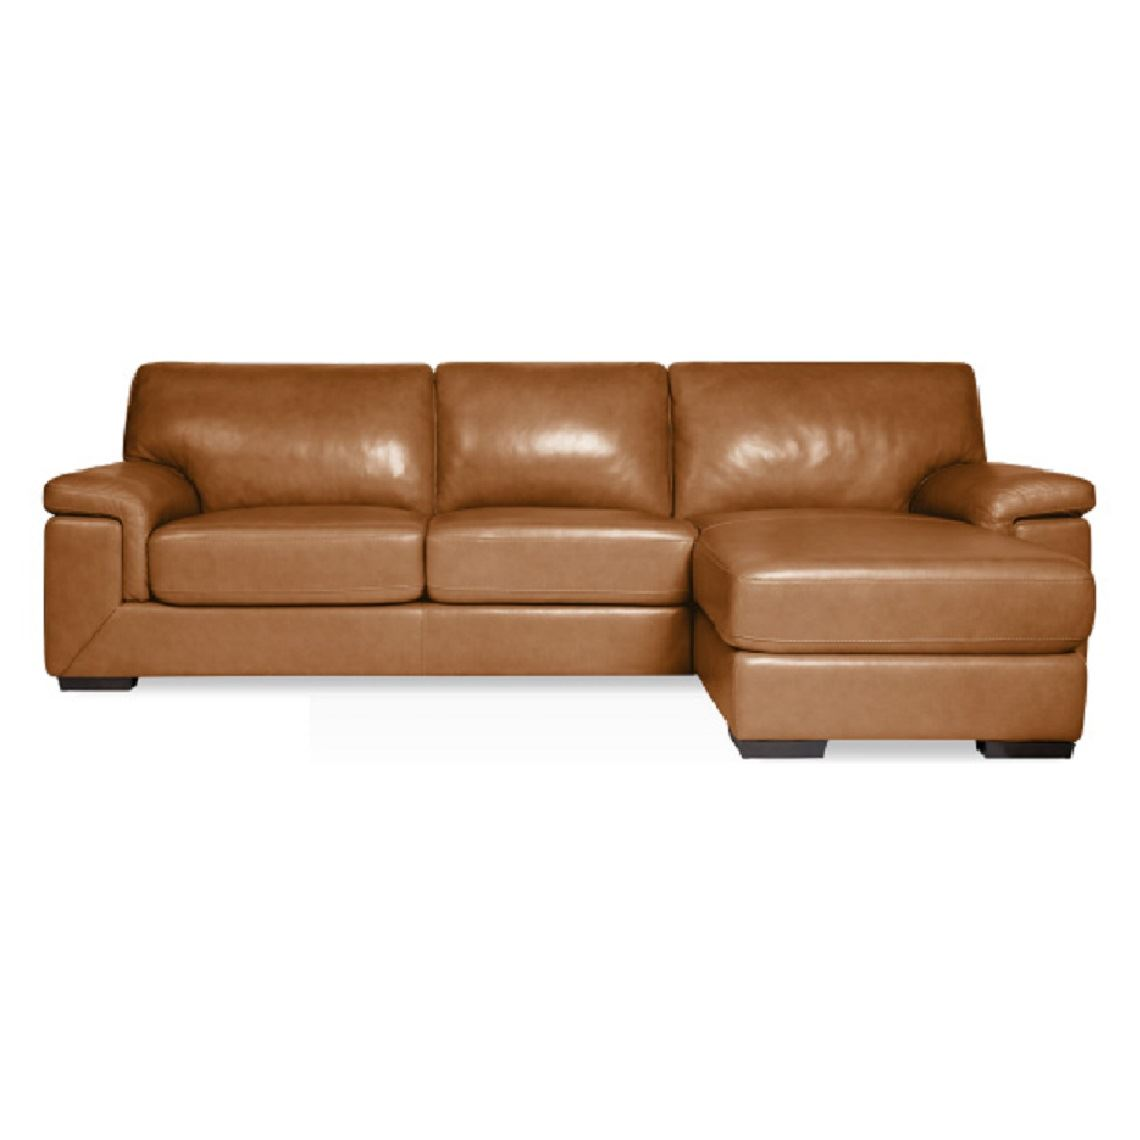 Barret 2 5 Seat Leather Modular Sofa W Right Chaise Size W 289cm X D 164cm X H 89cm In Caramel Leather Foam Fibre Freedom By Freedom Style Sourcebook